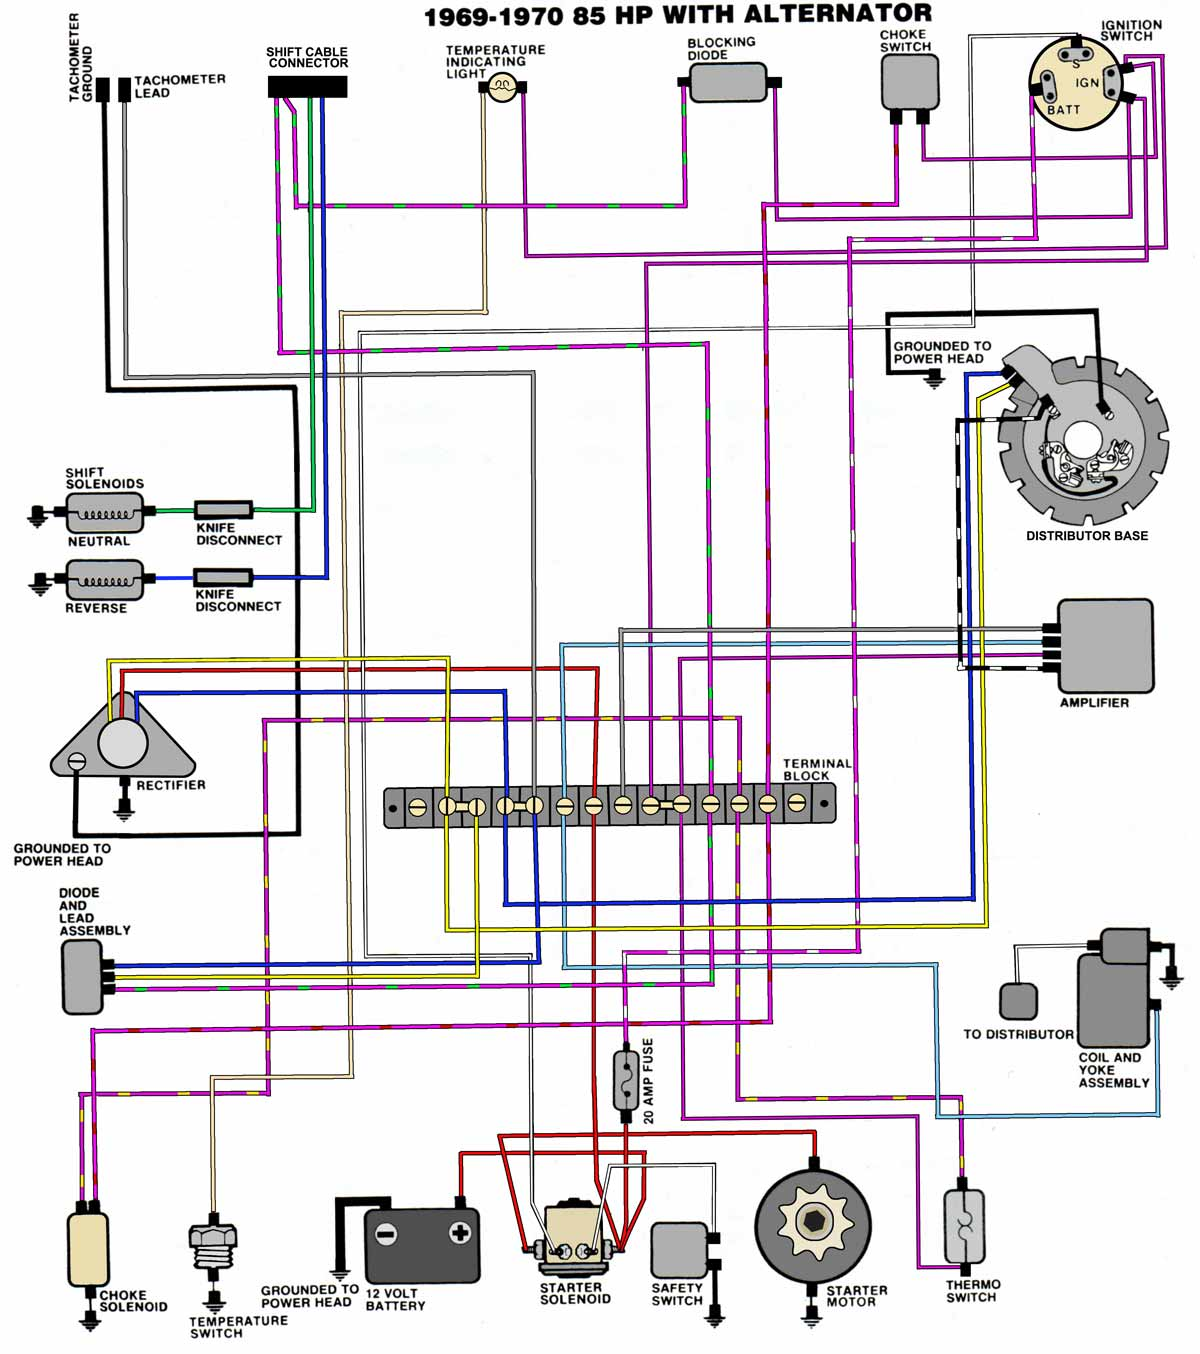 69_70_V4 suzuki 115 outboard wiring diagram efcaviation com Suzuki DF140 Lower Unit Diagram at fashall.co